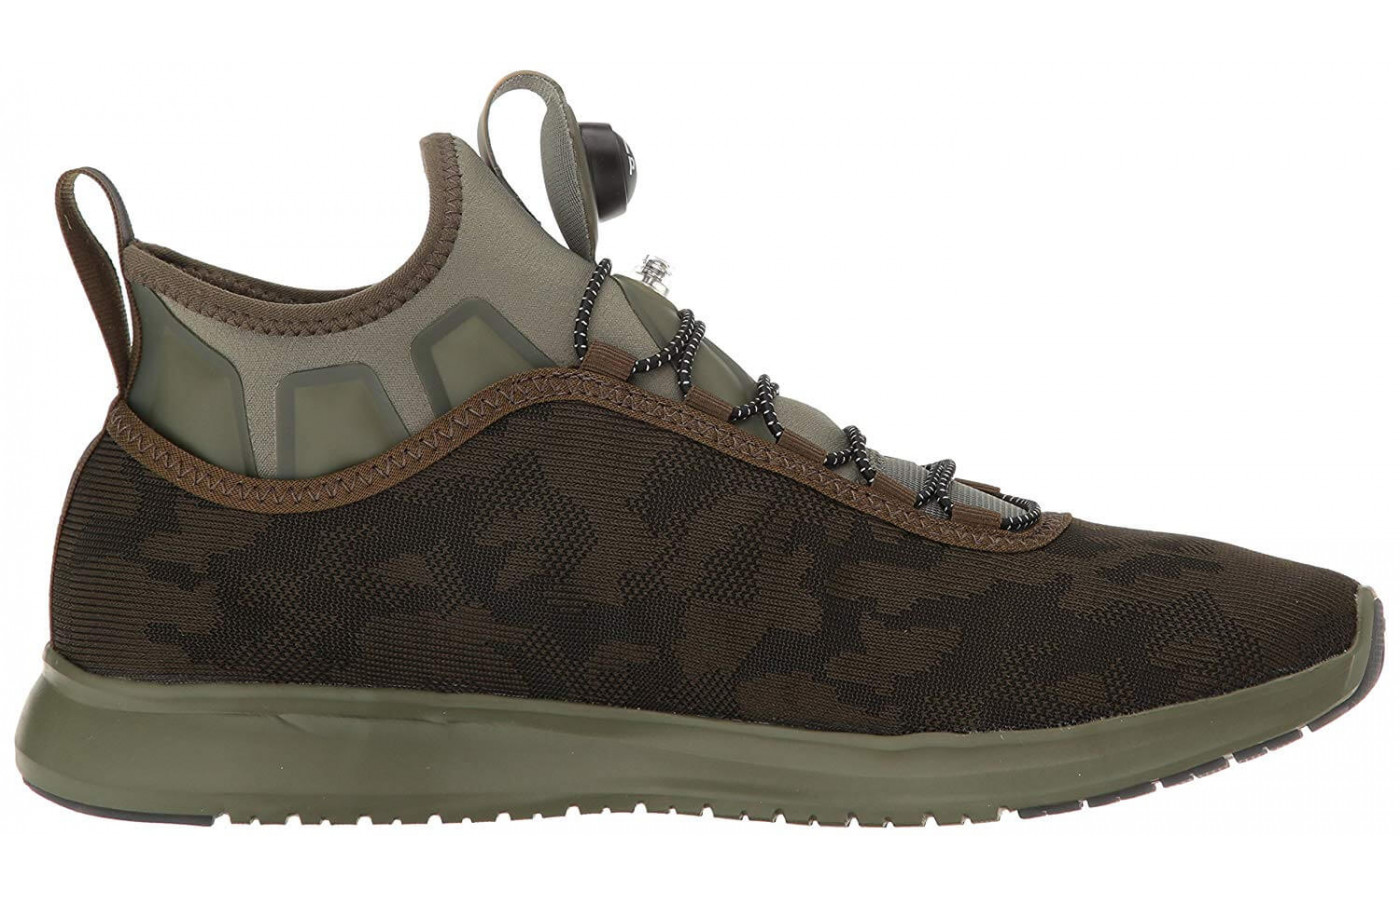 fa96eecc88ba The Pump Plus Camo is only available in four neutral colorways  The shoe s  Pump Plus technology gives a more supportive and stable wear ...